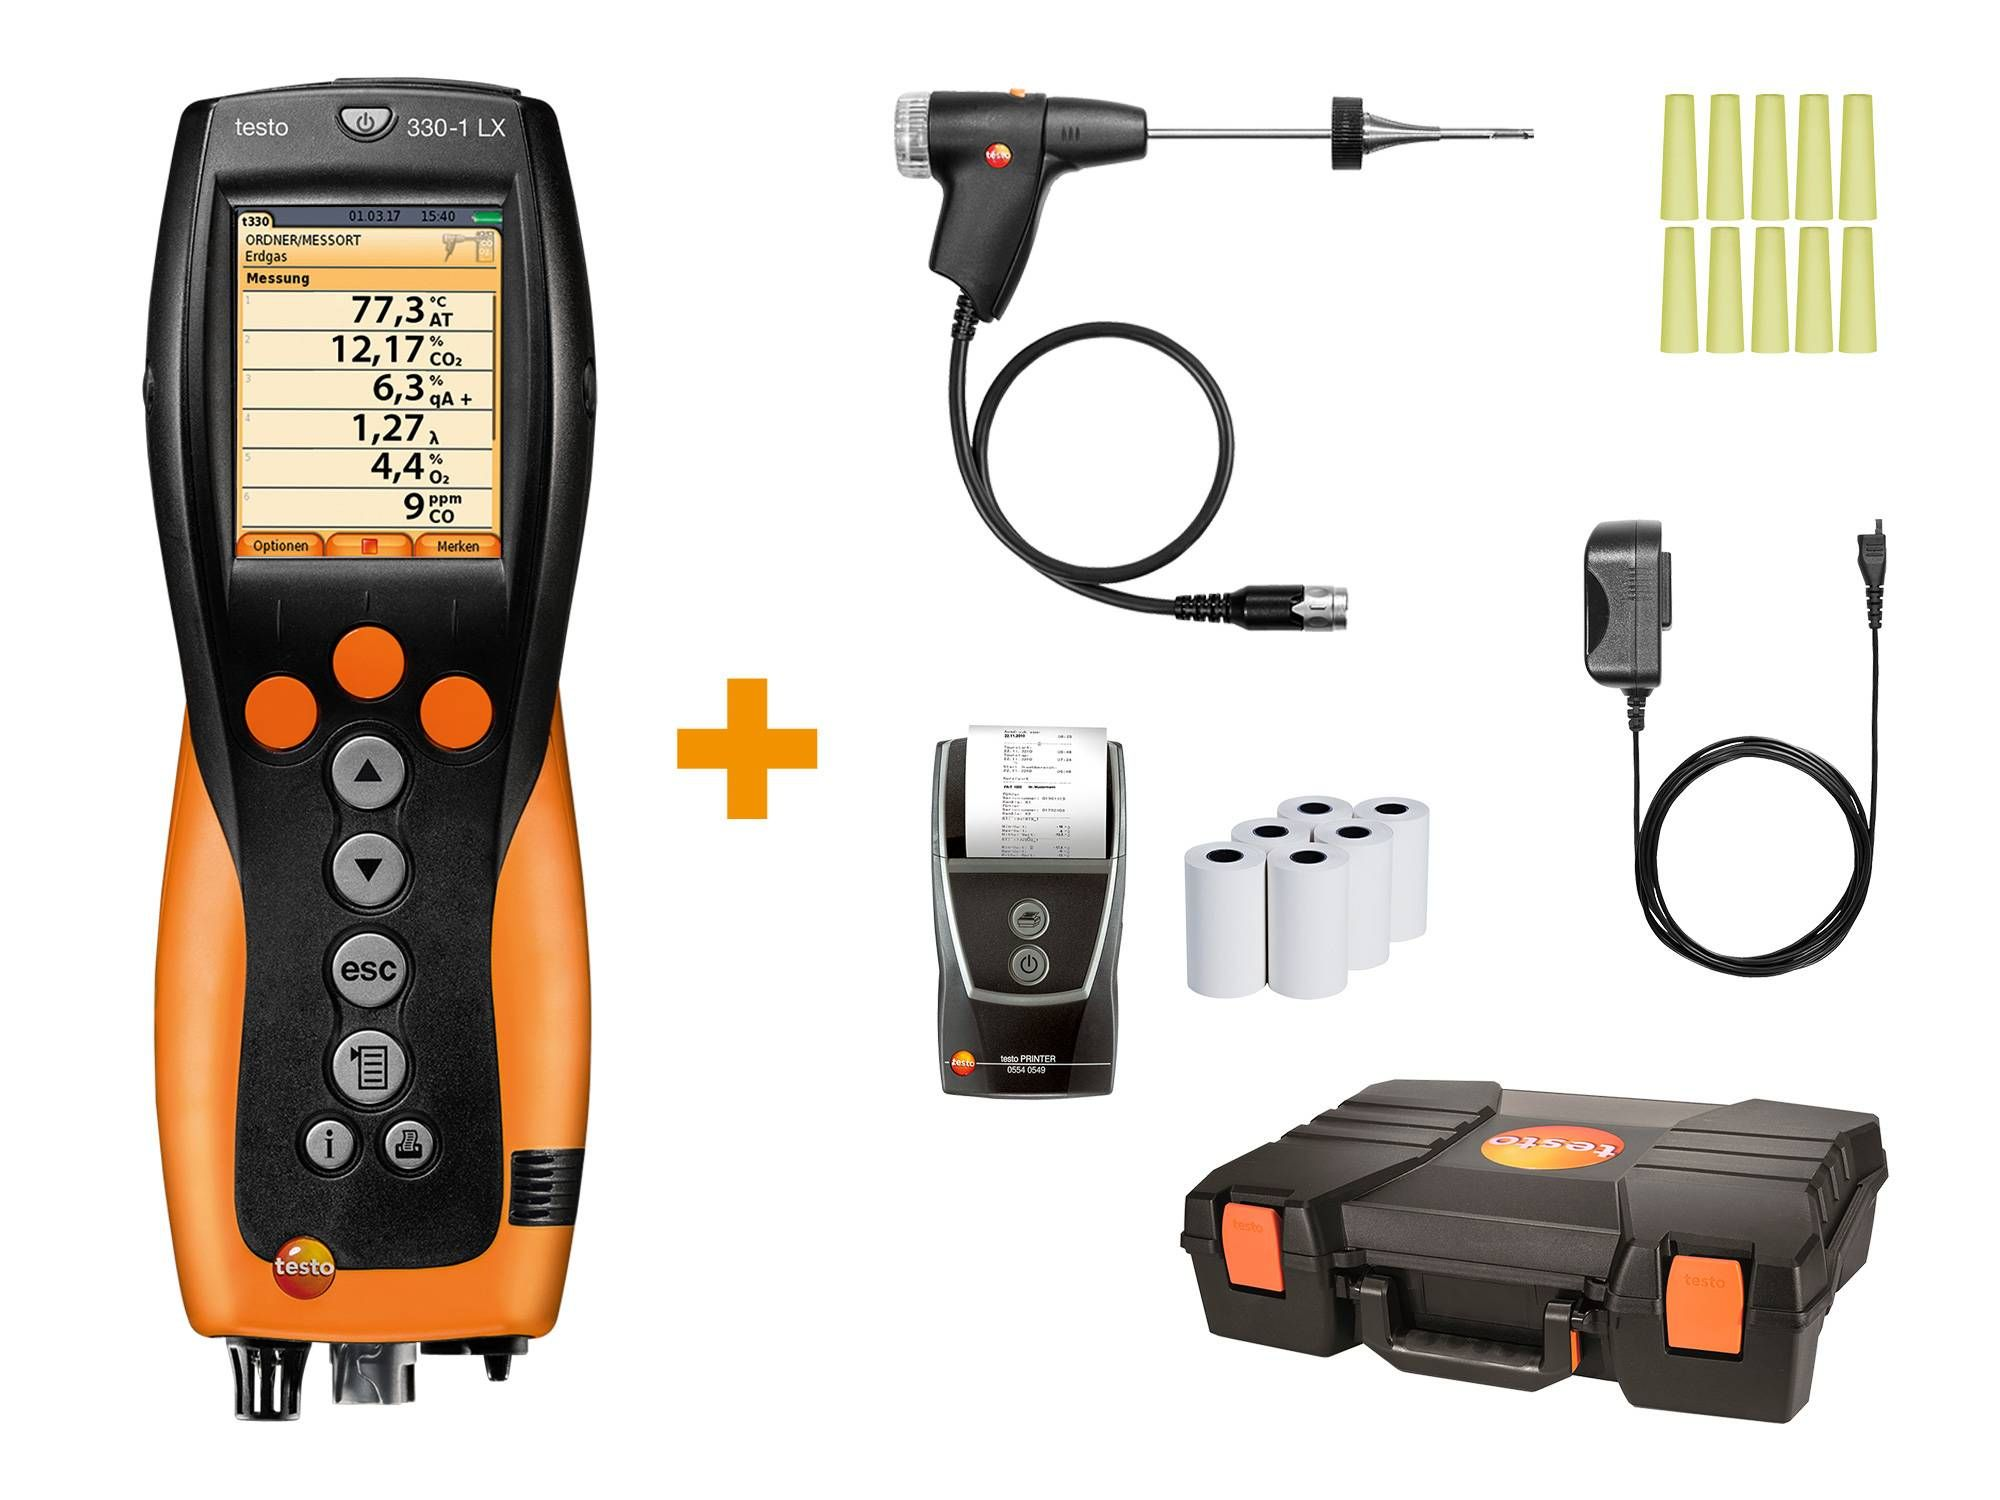 Analyseur de combustion testo 330-1 LX